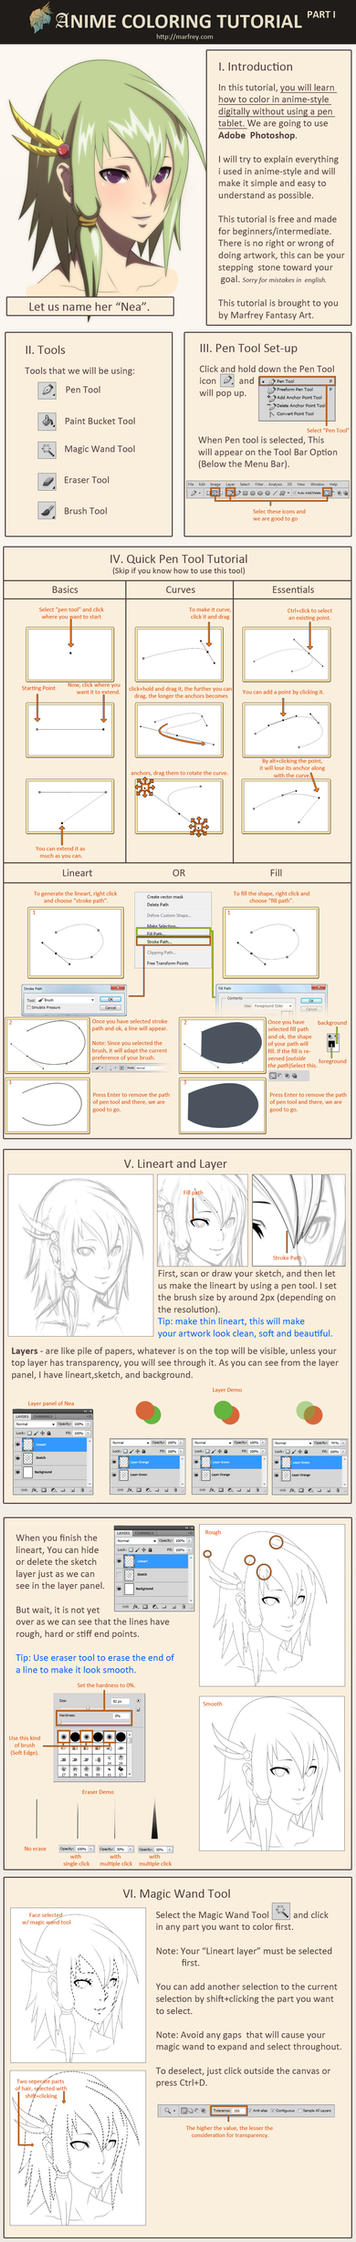 Anime Coloring Tutorial Part 1 by Marfrey on DeviantArt